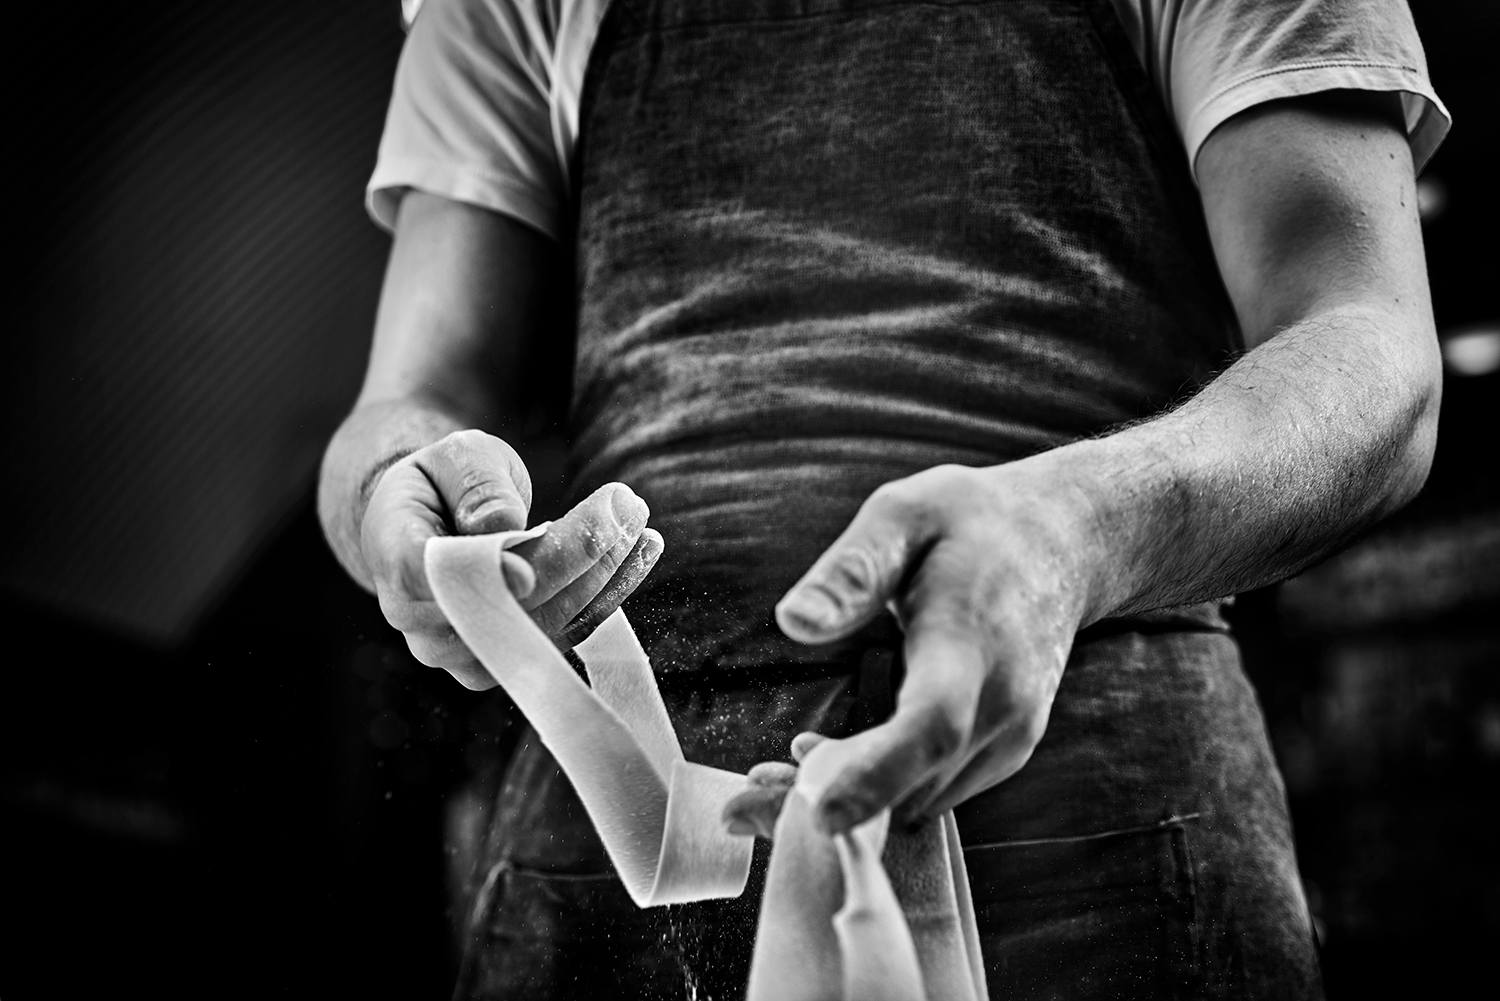 food-photographer-photography-drink-pasta-recipe-recipes-hand-made-fresh-prepared-documentary-provenance-cooking-cook-cookbook-recipe-making-process-steps-step-by-step-black-and-white-hands-hand-cutter-cutting-tool-tools-tortellini-tortelloni-lasagne-tools-pasta-making-overhead-brass-cutter-roller-brush-extruder-press.jpg